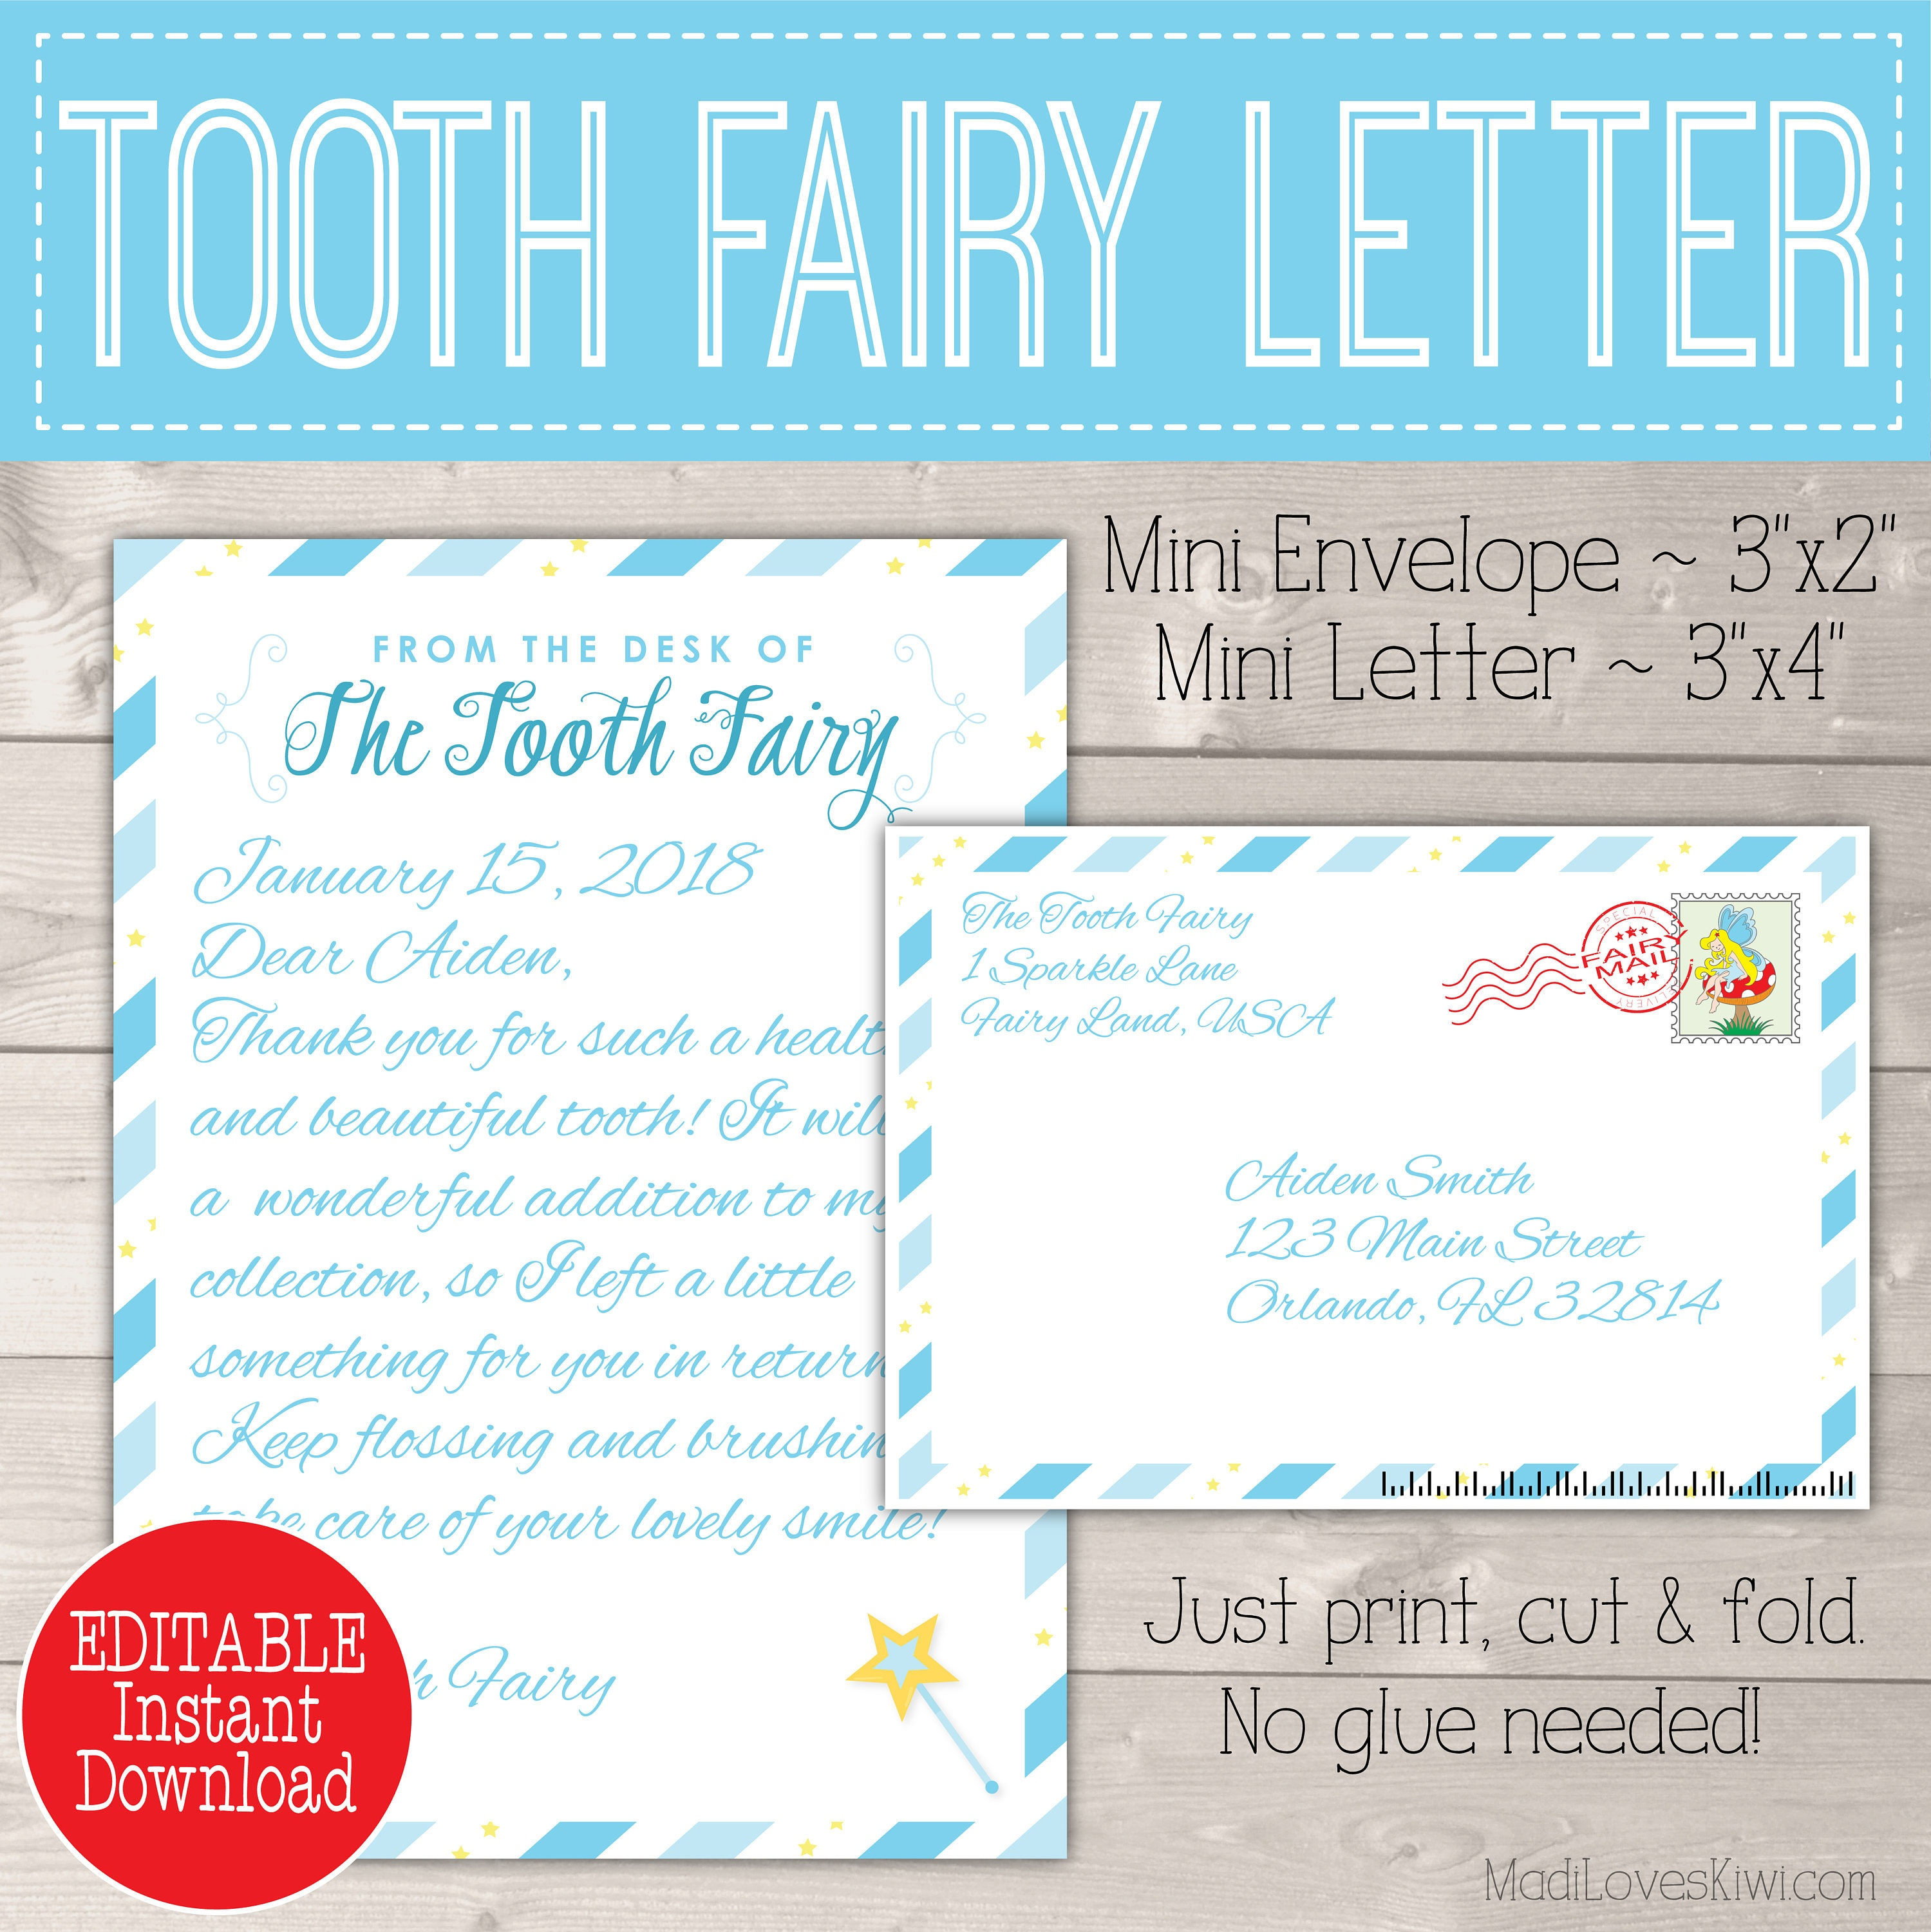 Personalized Tooth Fairy Letter Kit Boy Printable Download | Etsy - Tooth Fairy Stationery Free Printable